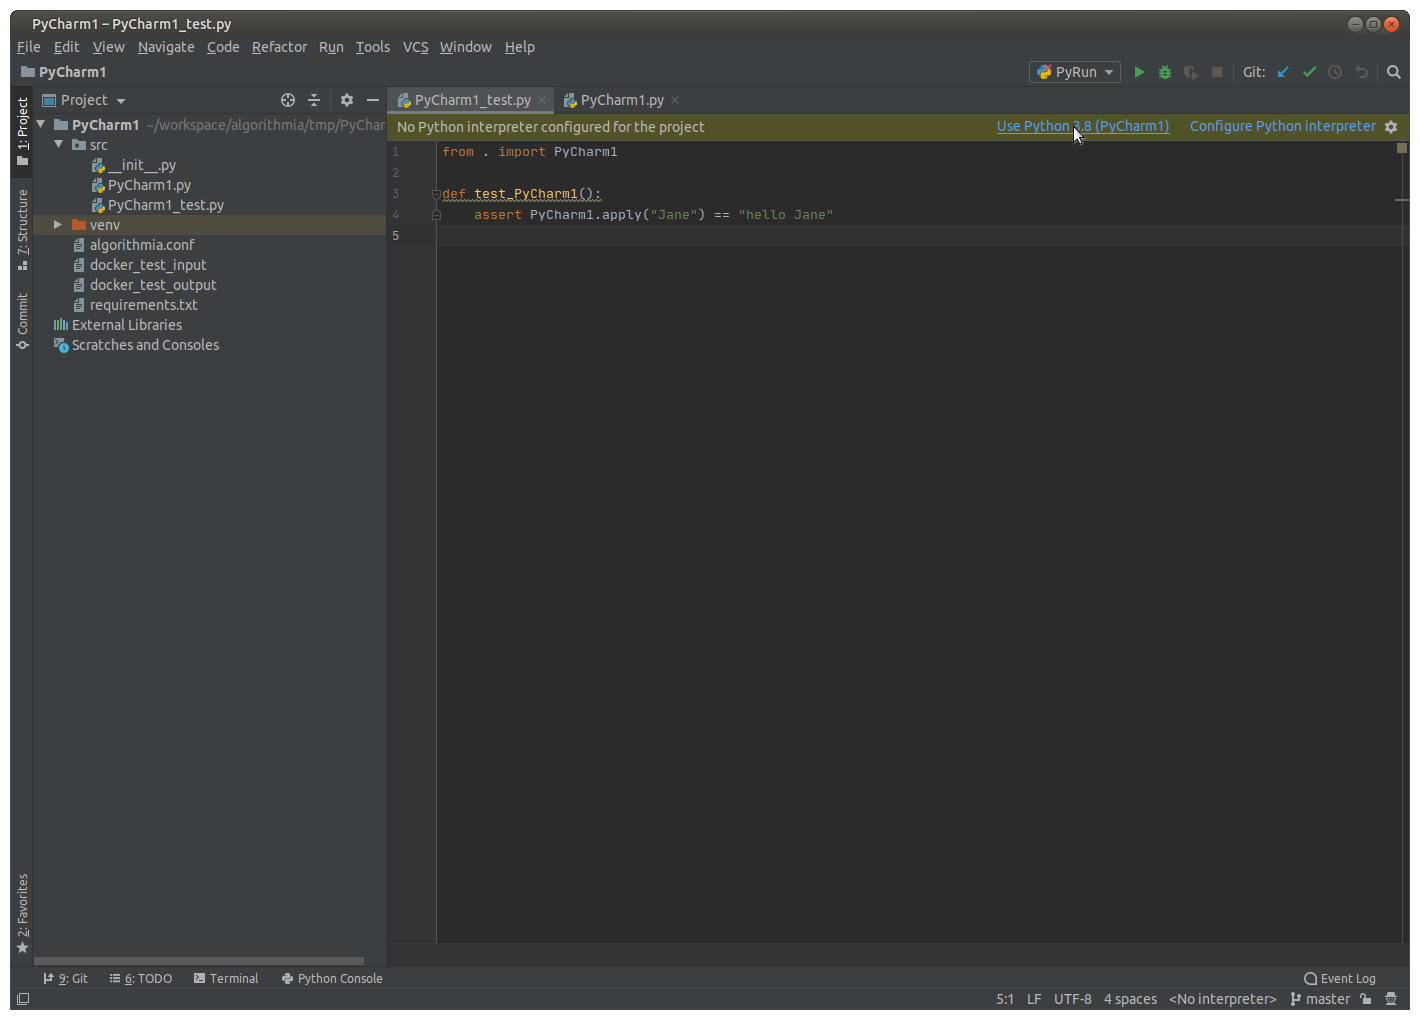 PyCharm - No Python interpreter configured for the project